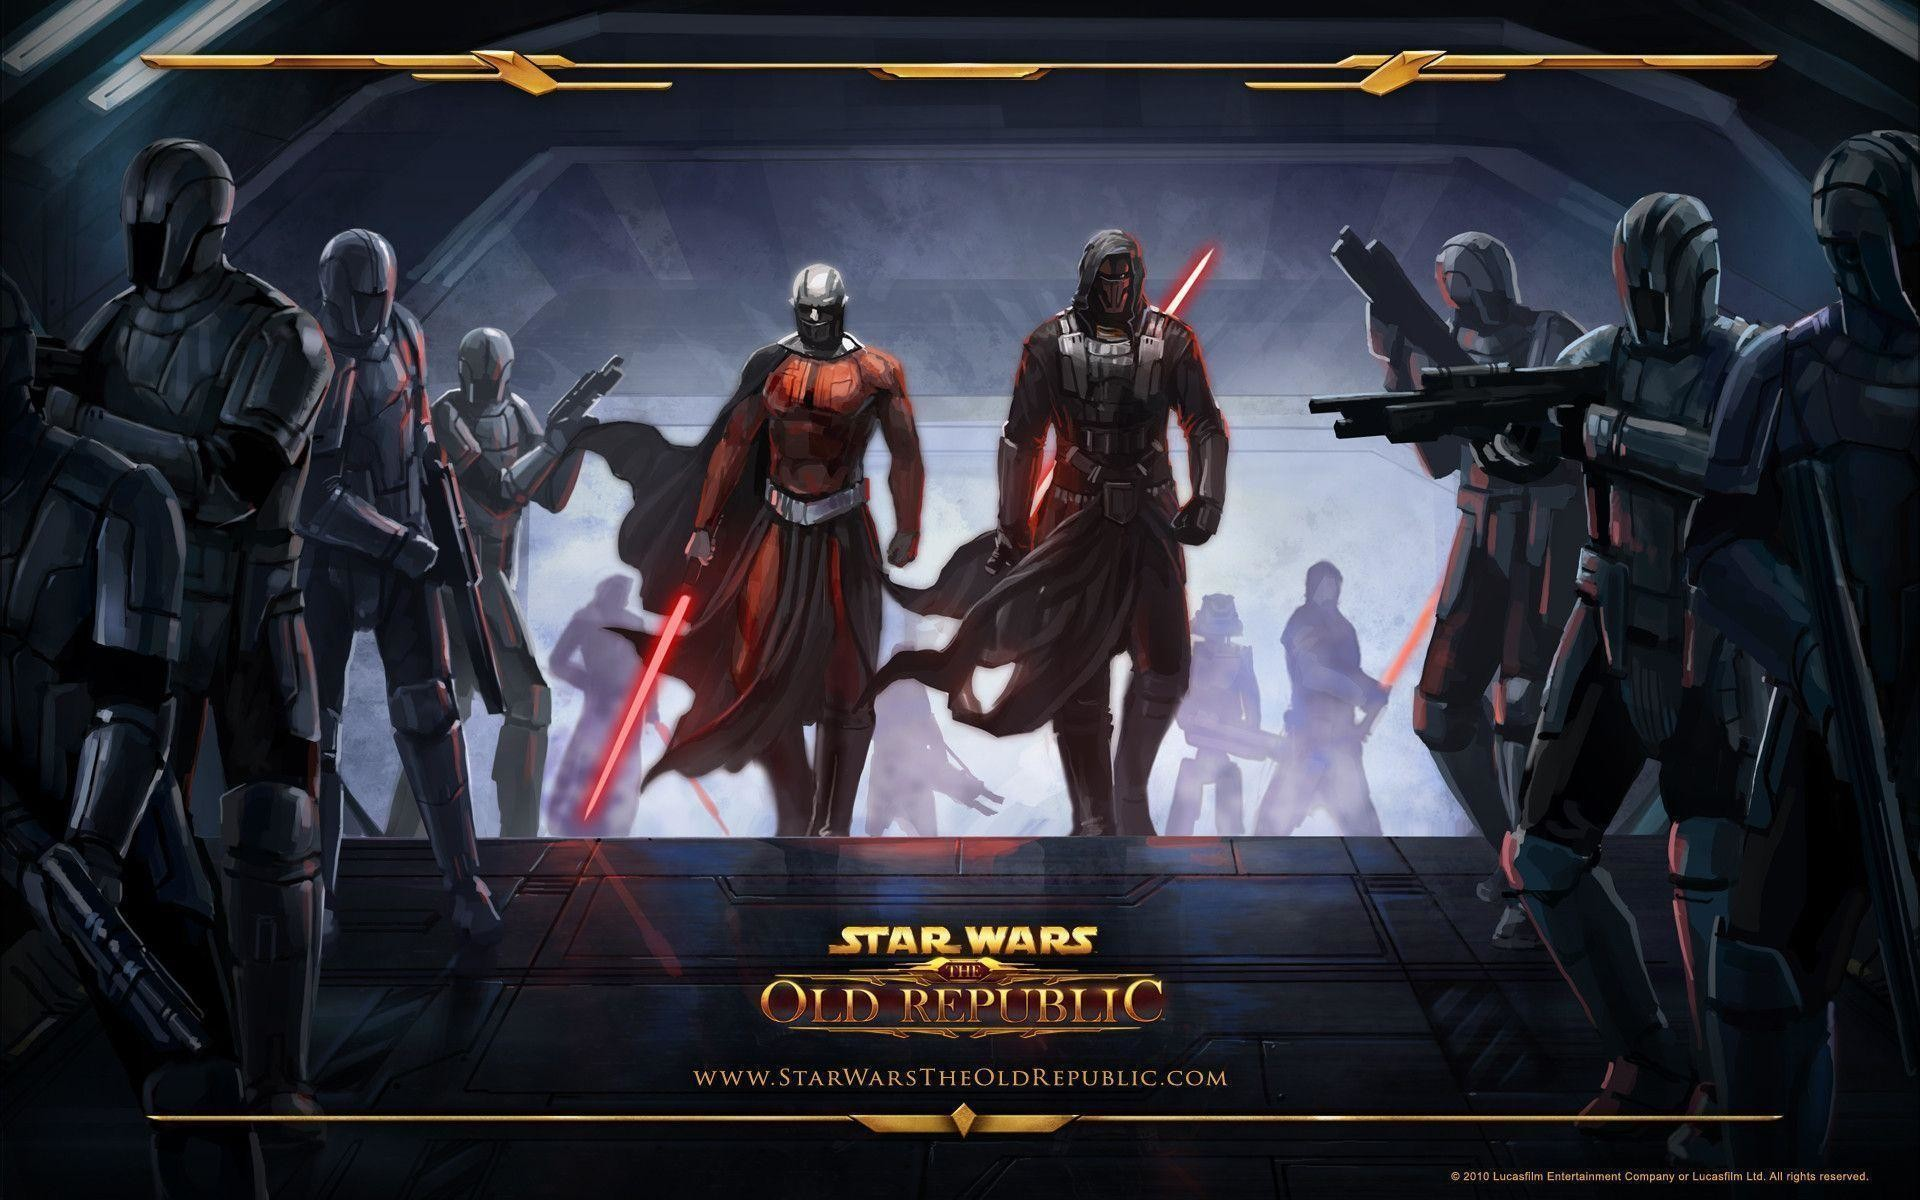 1920x1200 Star Wars The Old Republic Wallpapers - Full HD wallpaper search .